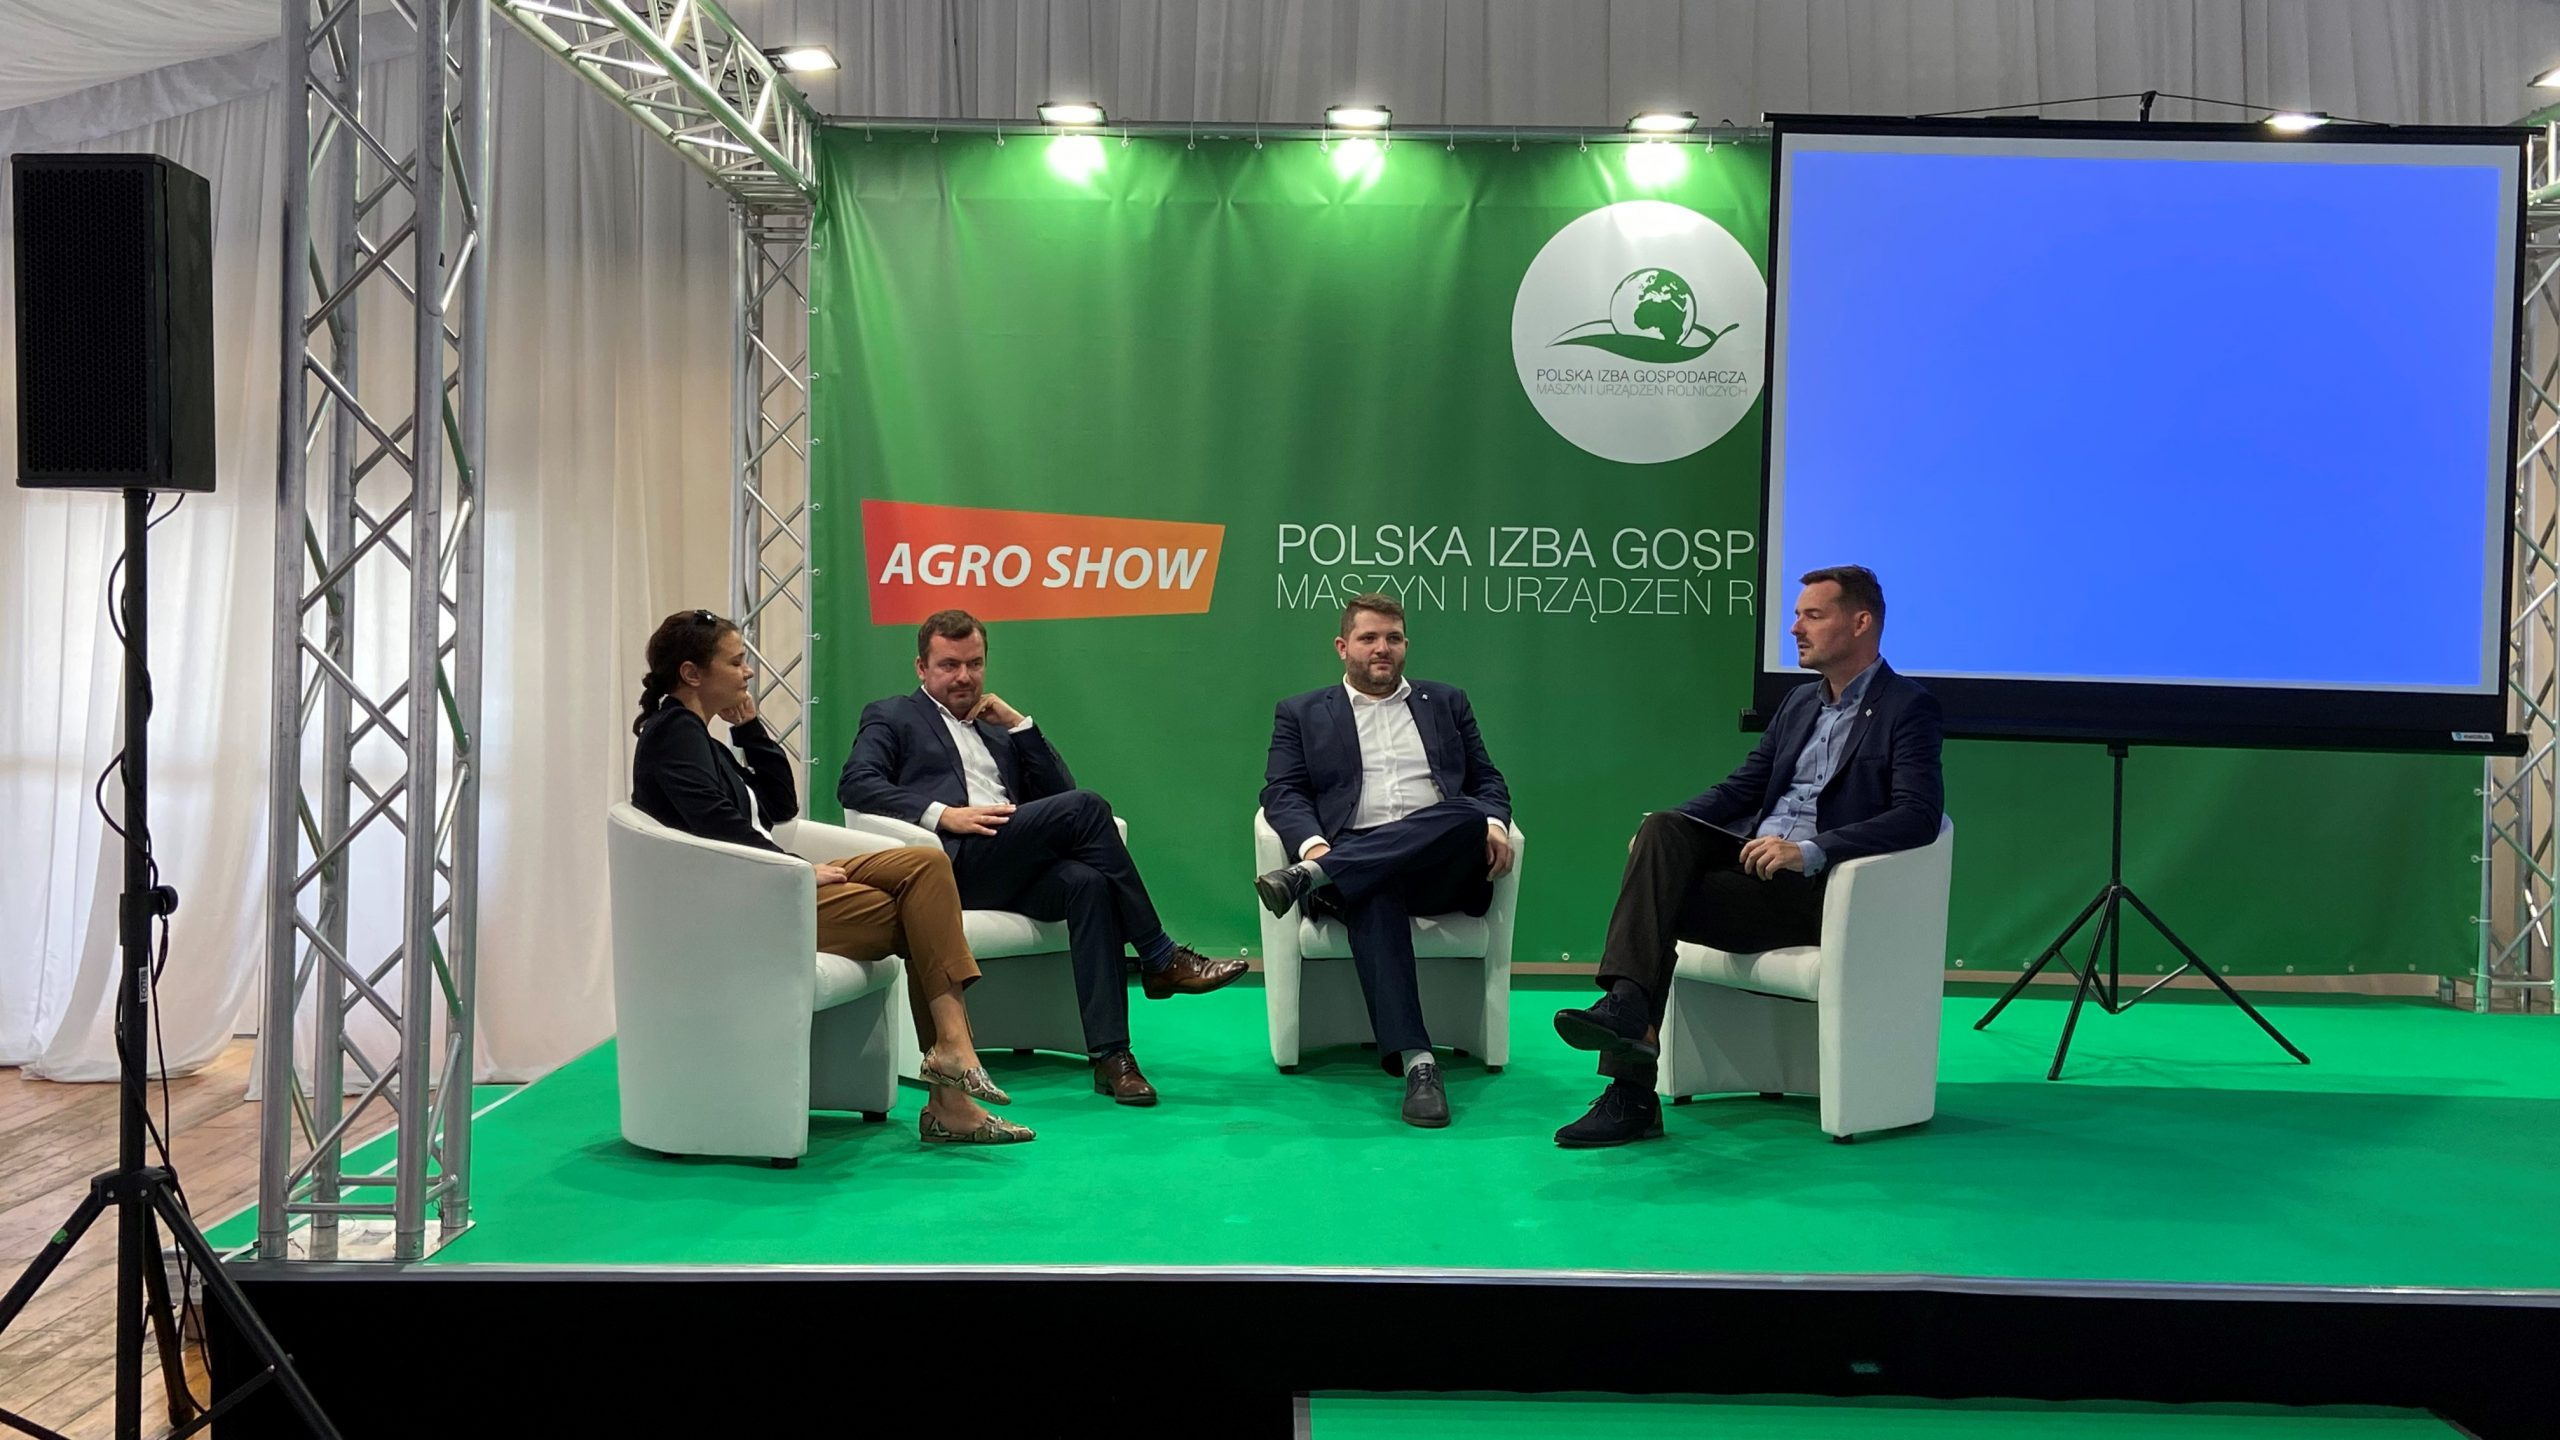 Presentation of PSNC projects at Agro Show 2021